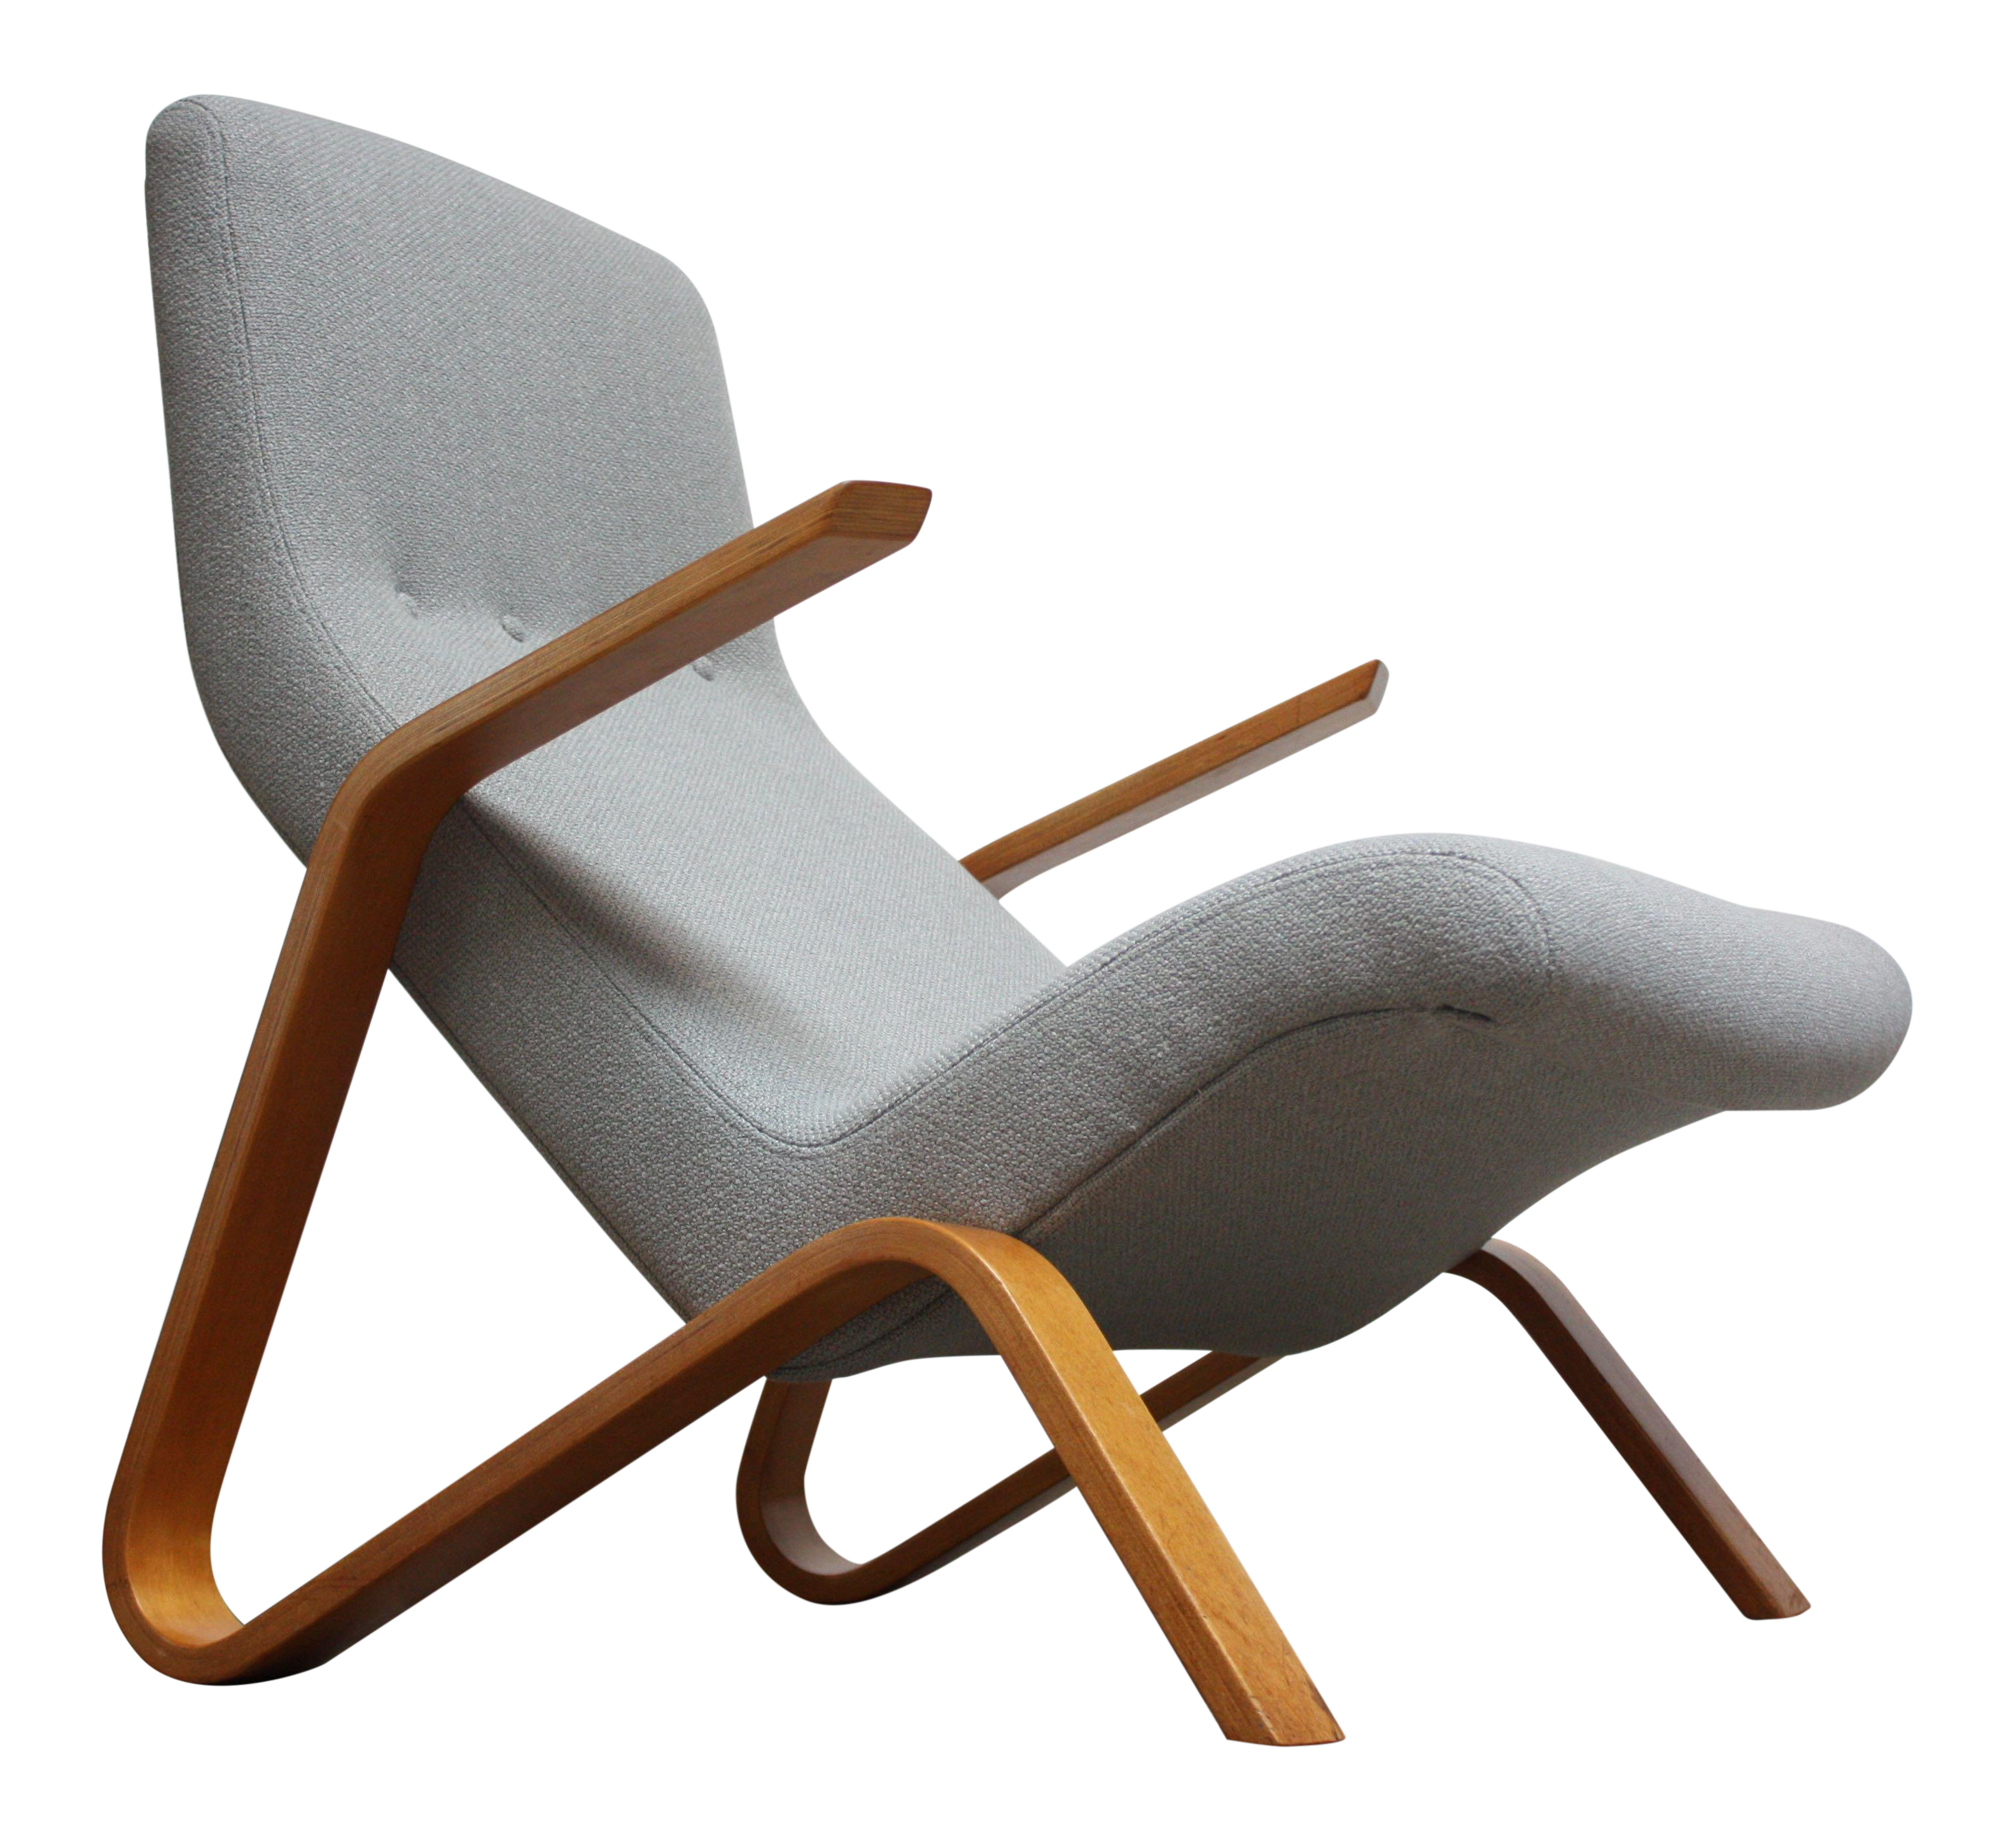 Exquisite Early U0027Grasshopperu0027 Chair By Eero Saarinen For Knoll Associates |  DECASO